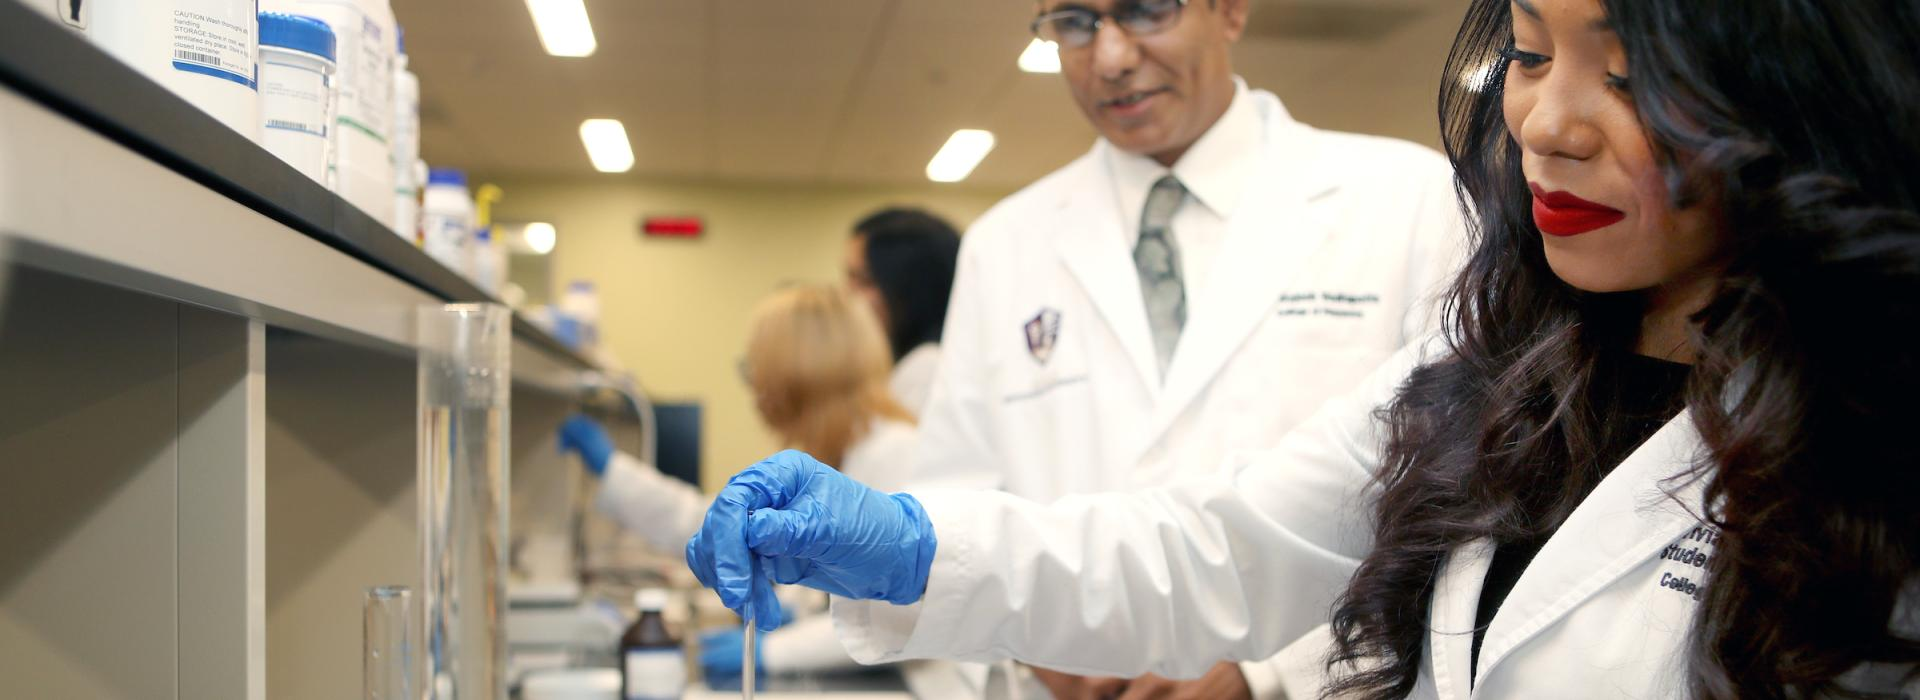 Pharmacy professor watches as female pharmacy student mixes compounds in a lab